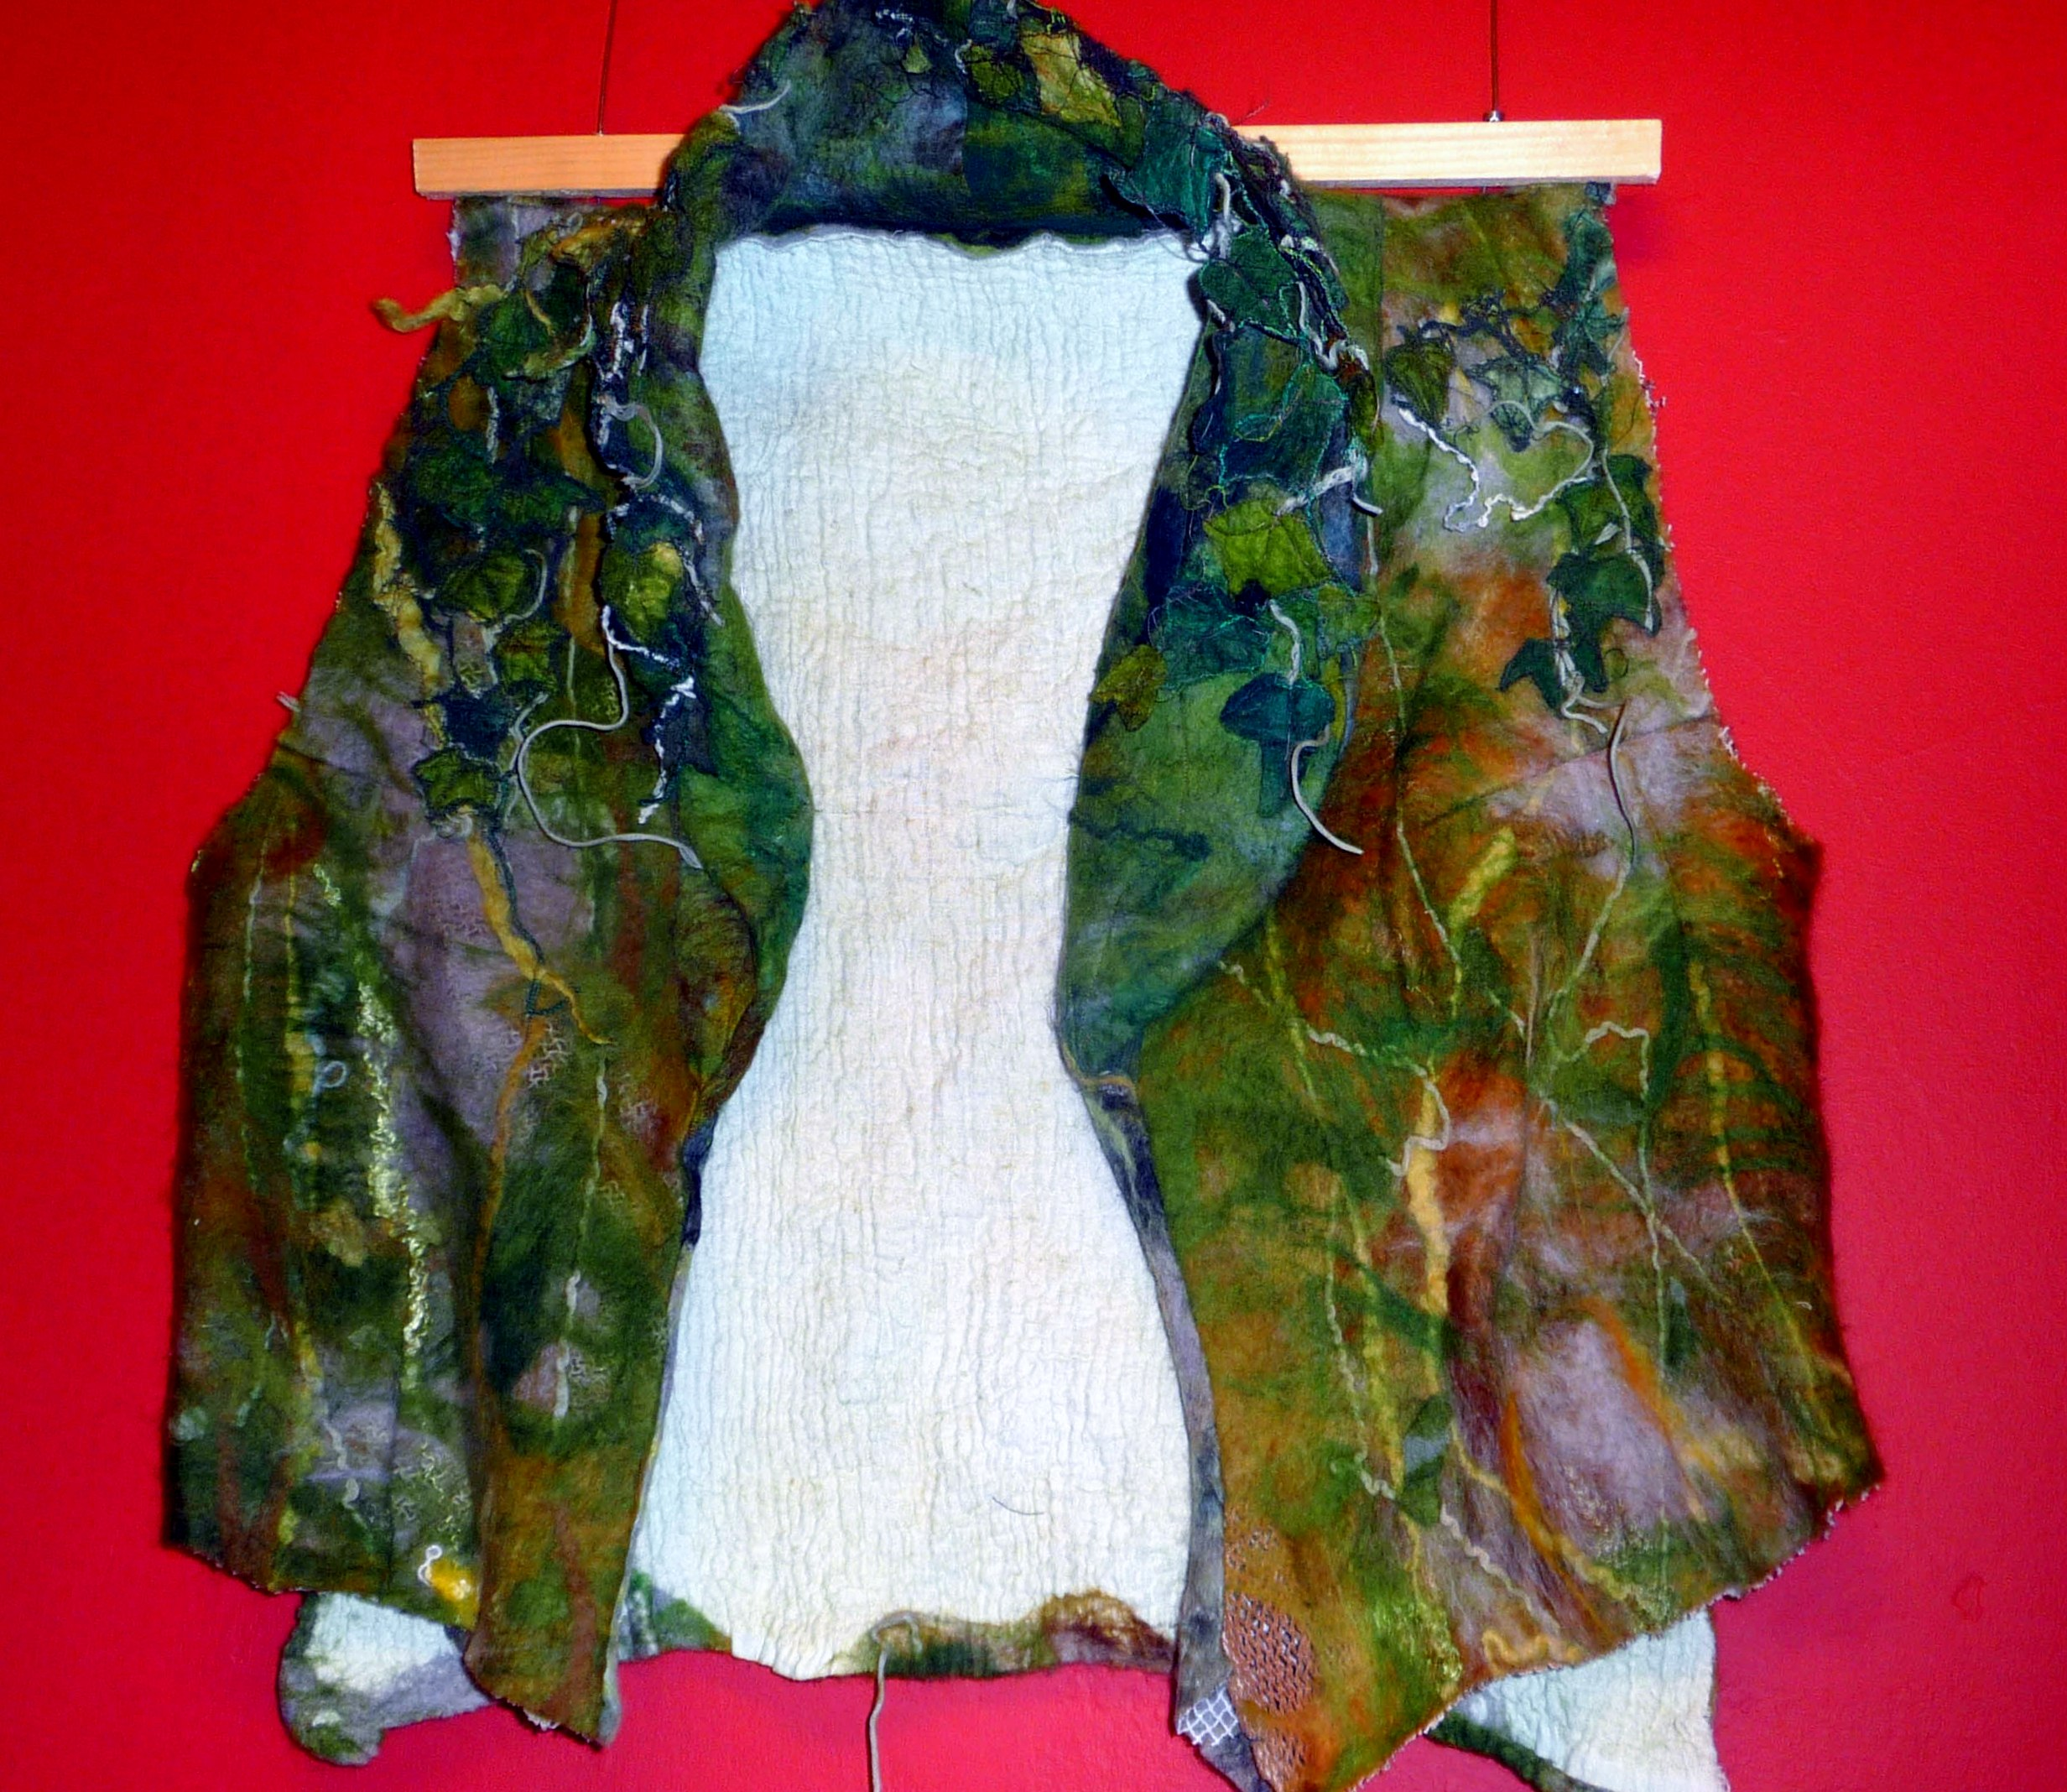 TALES FROM THE ENCHANTED WOOD, 2013, by Cathy Turner, handmade felt waistcoat